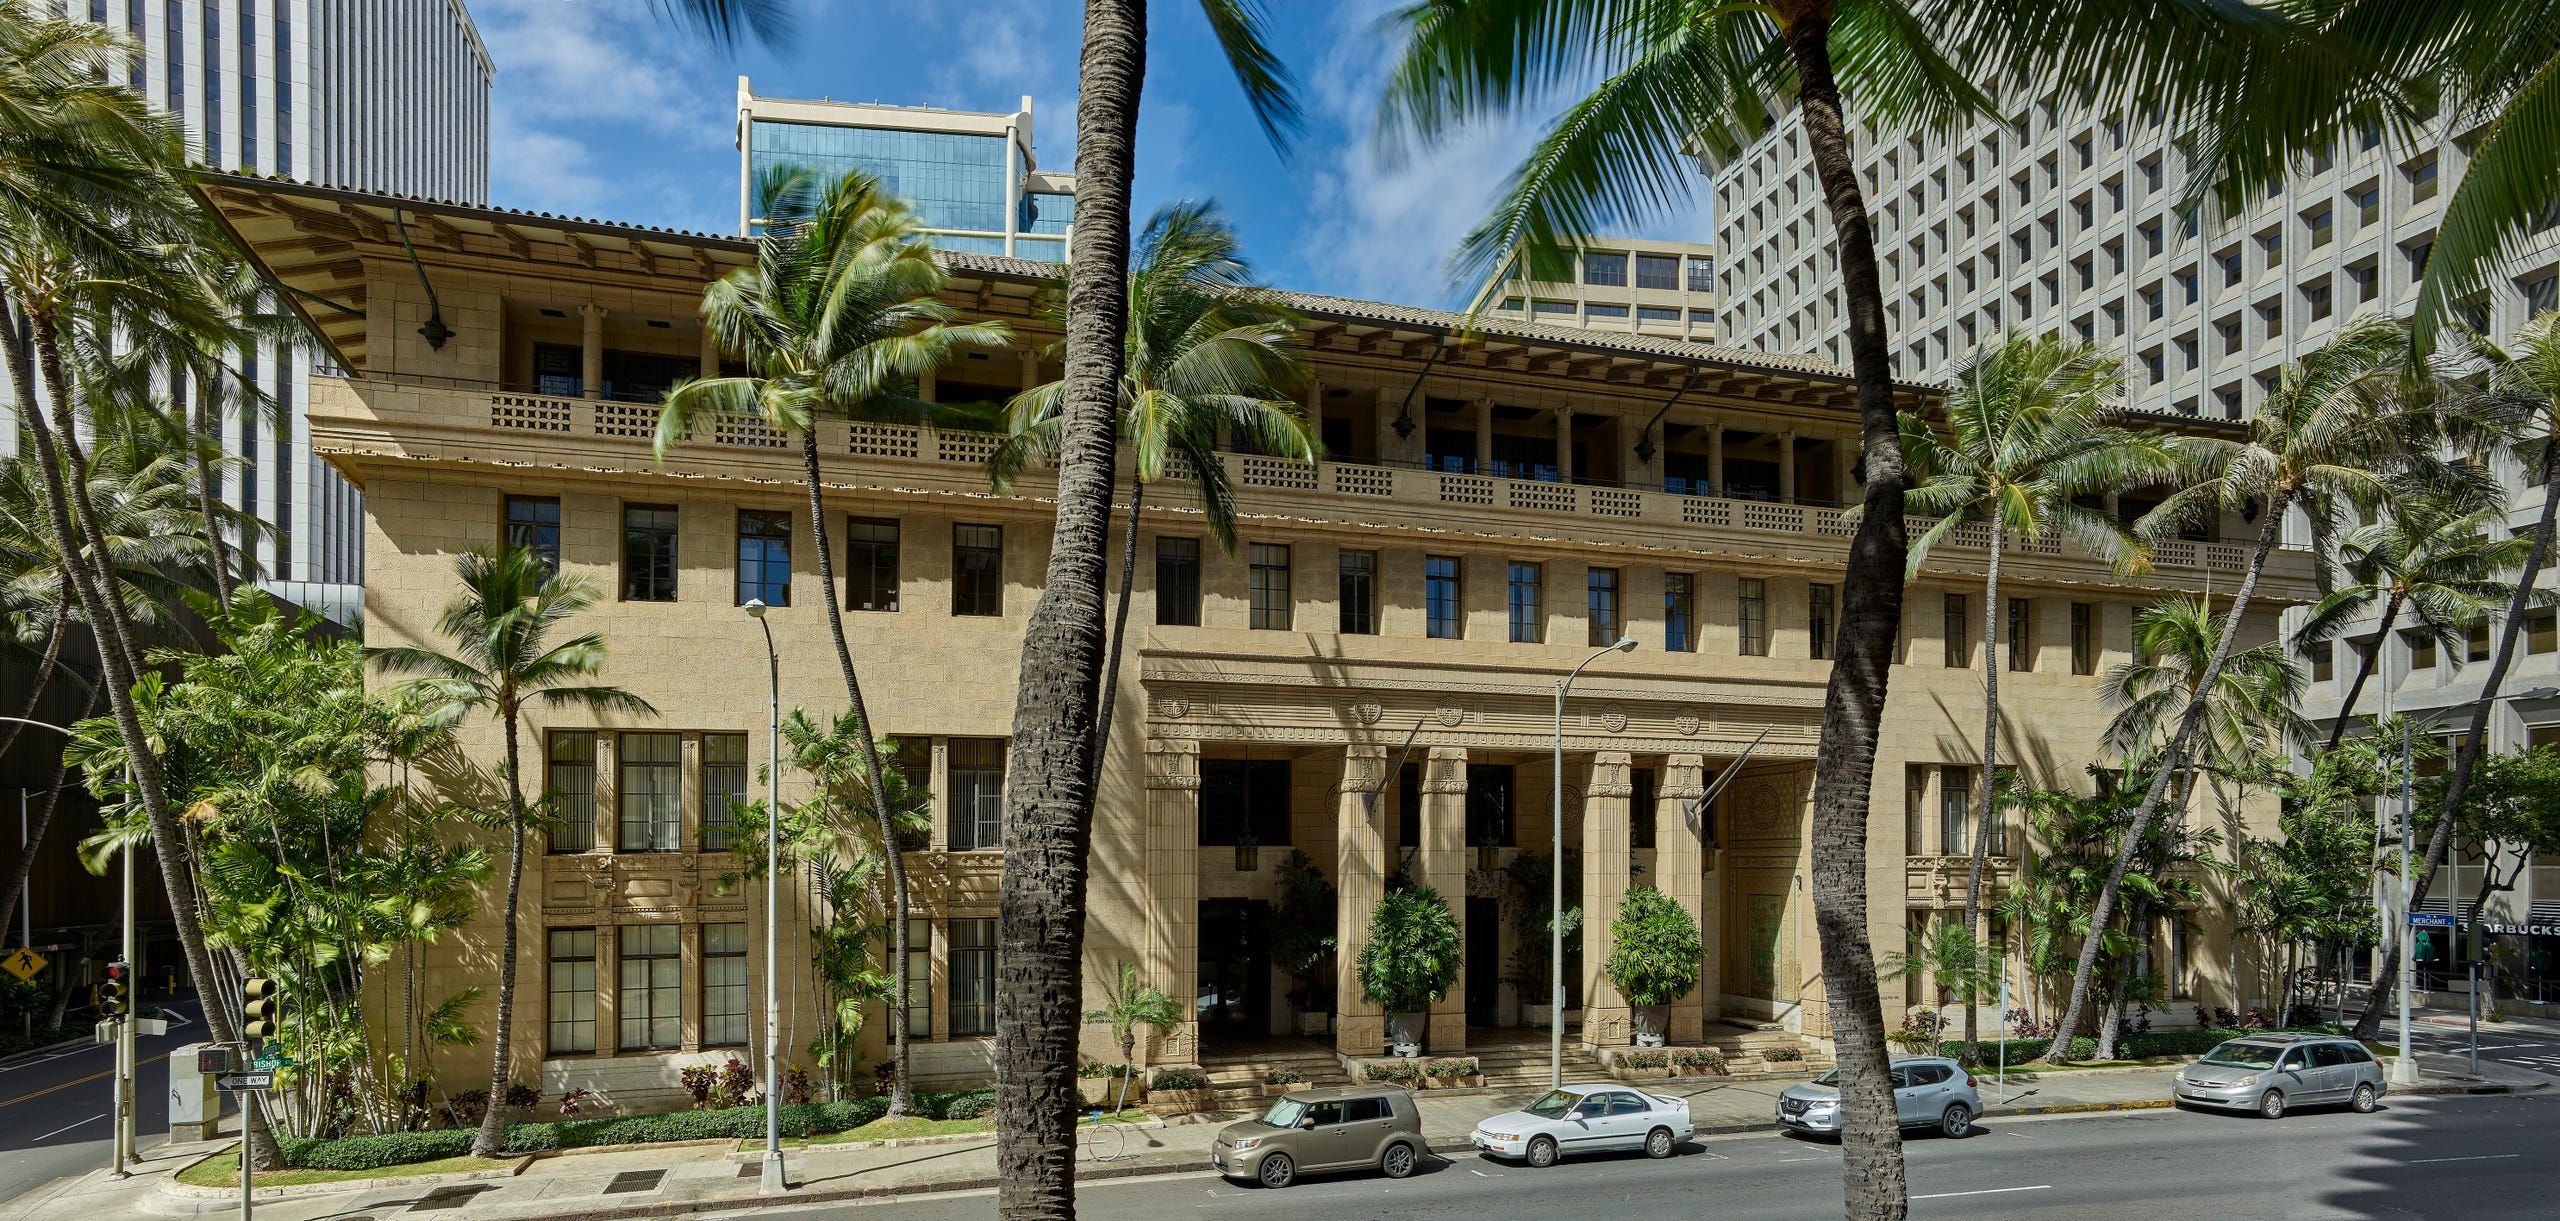 Buildings And Public Es In Hawaii